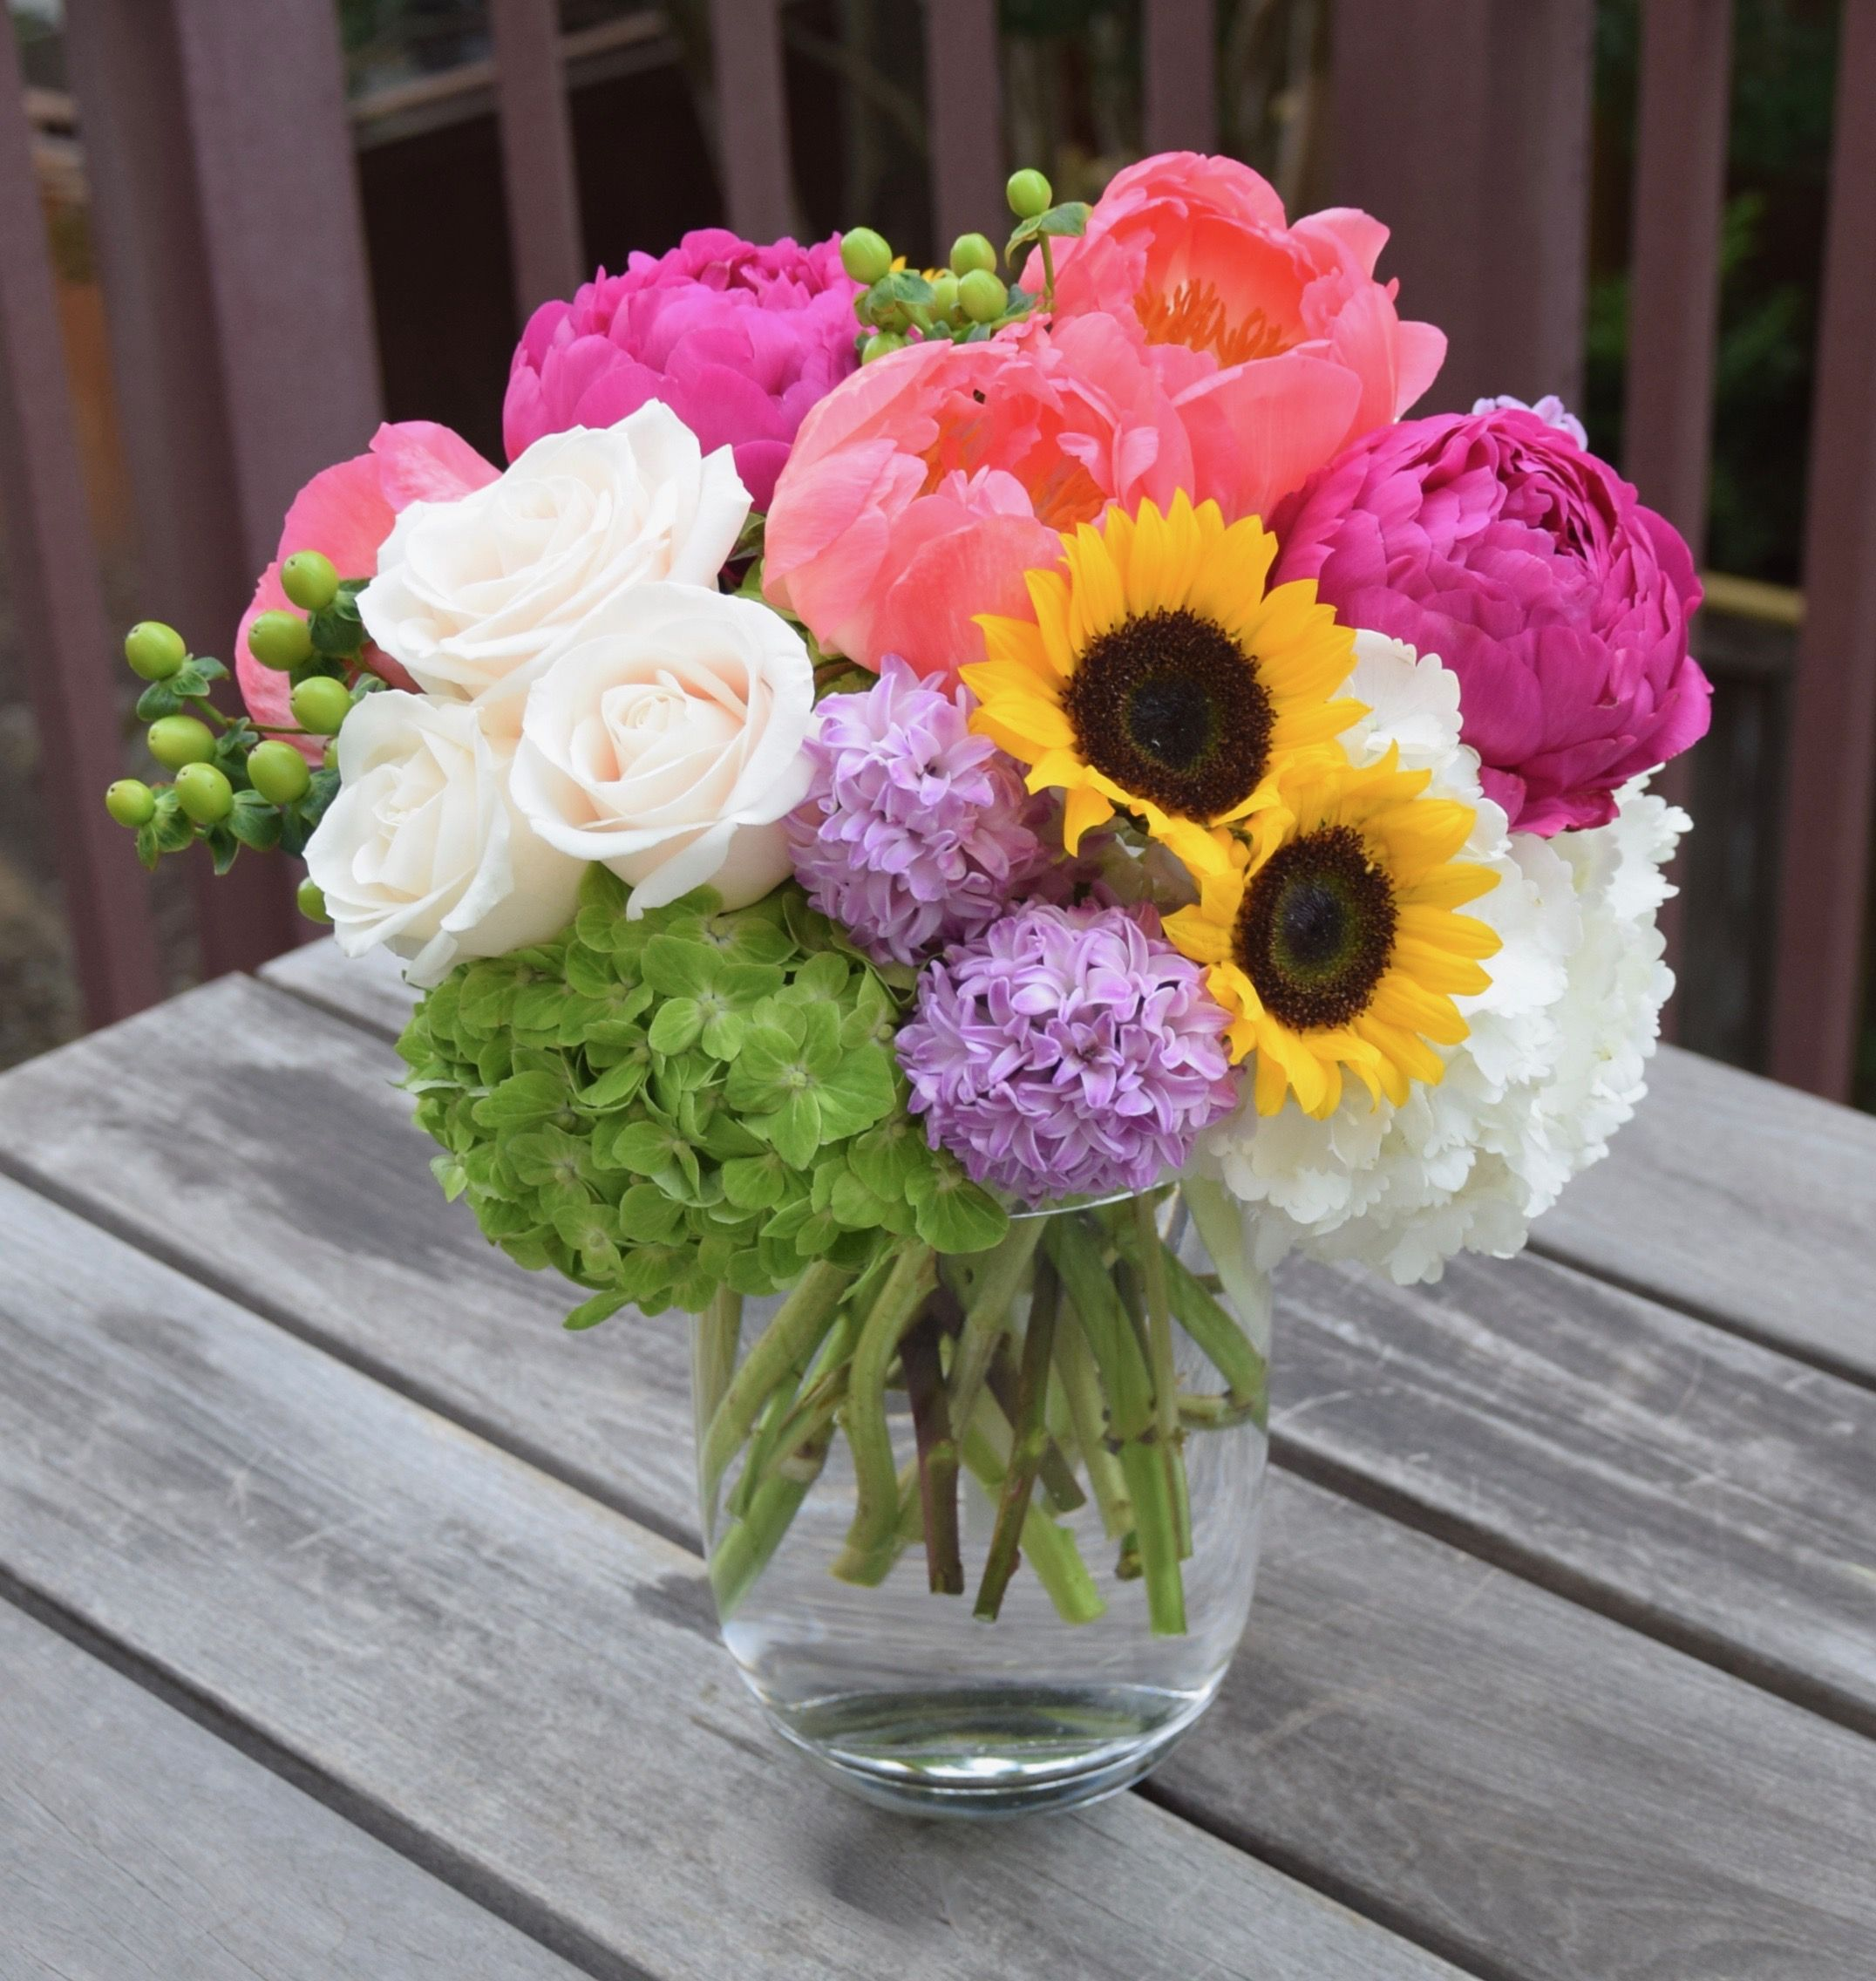 Colorful Spring Flower Arrangement With Peonies, Hyacinths, Hydrangeas, Sunflowers, Roses